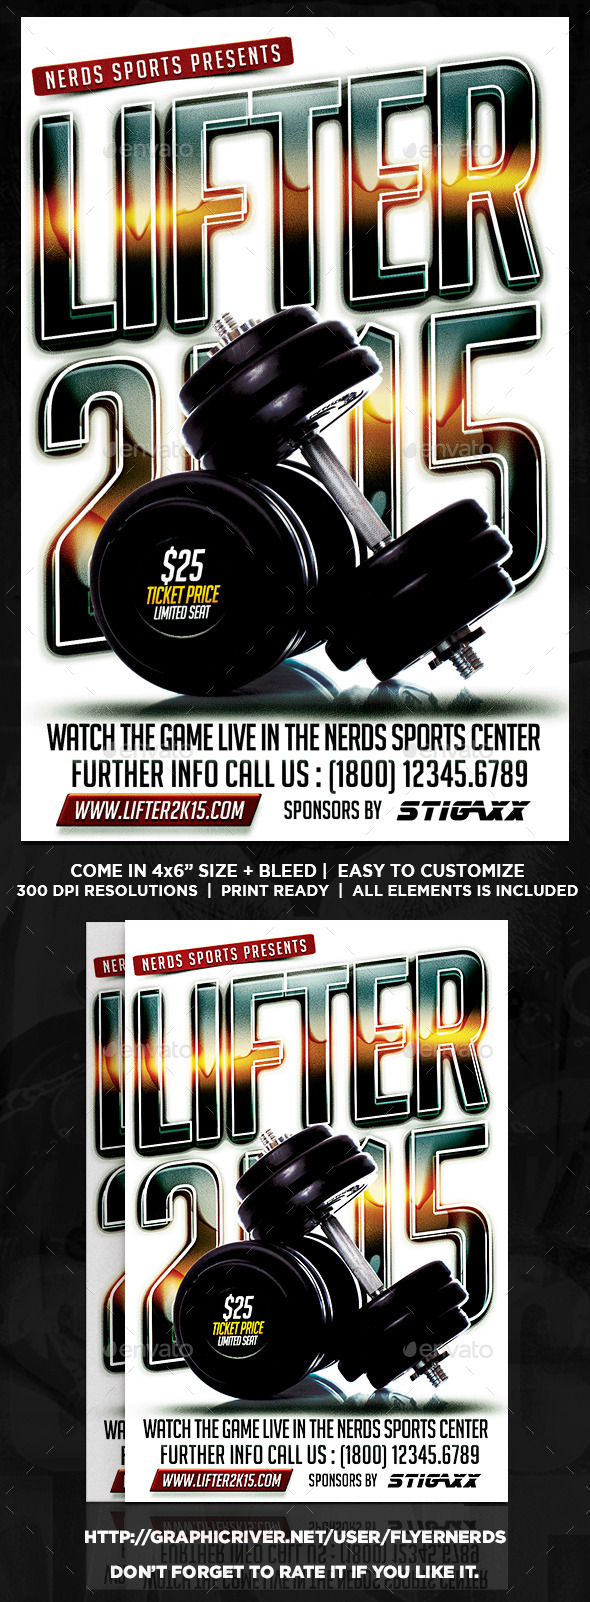 GraphicRiver Lifter 2K15 Championship Sports Flyer 9818892